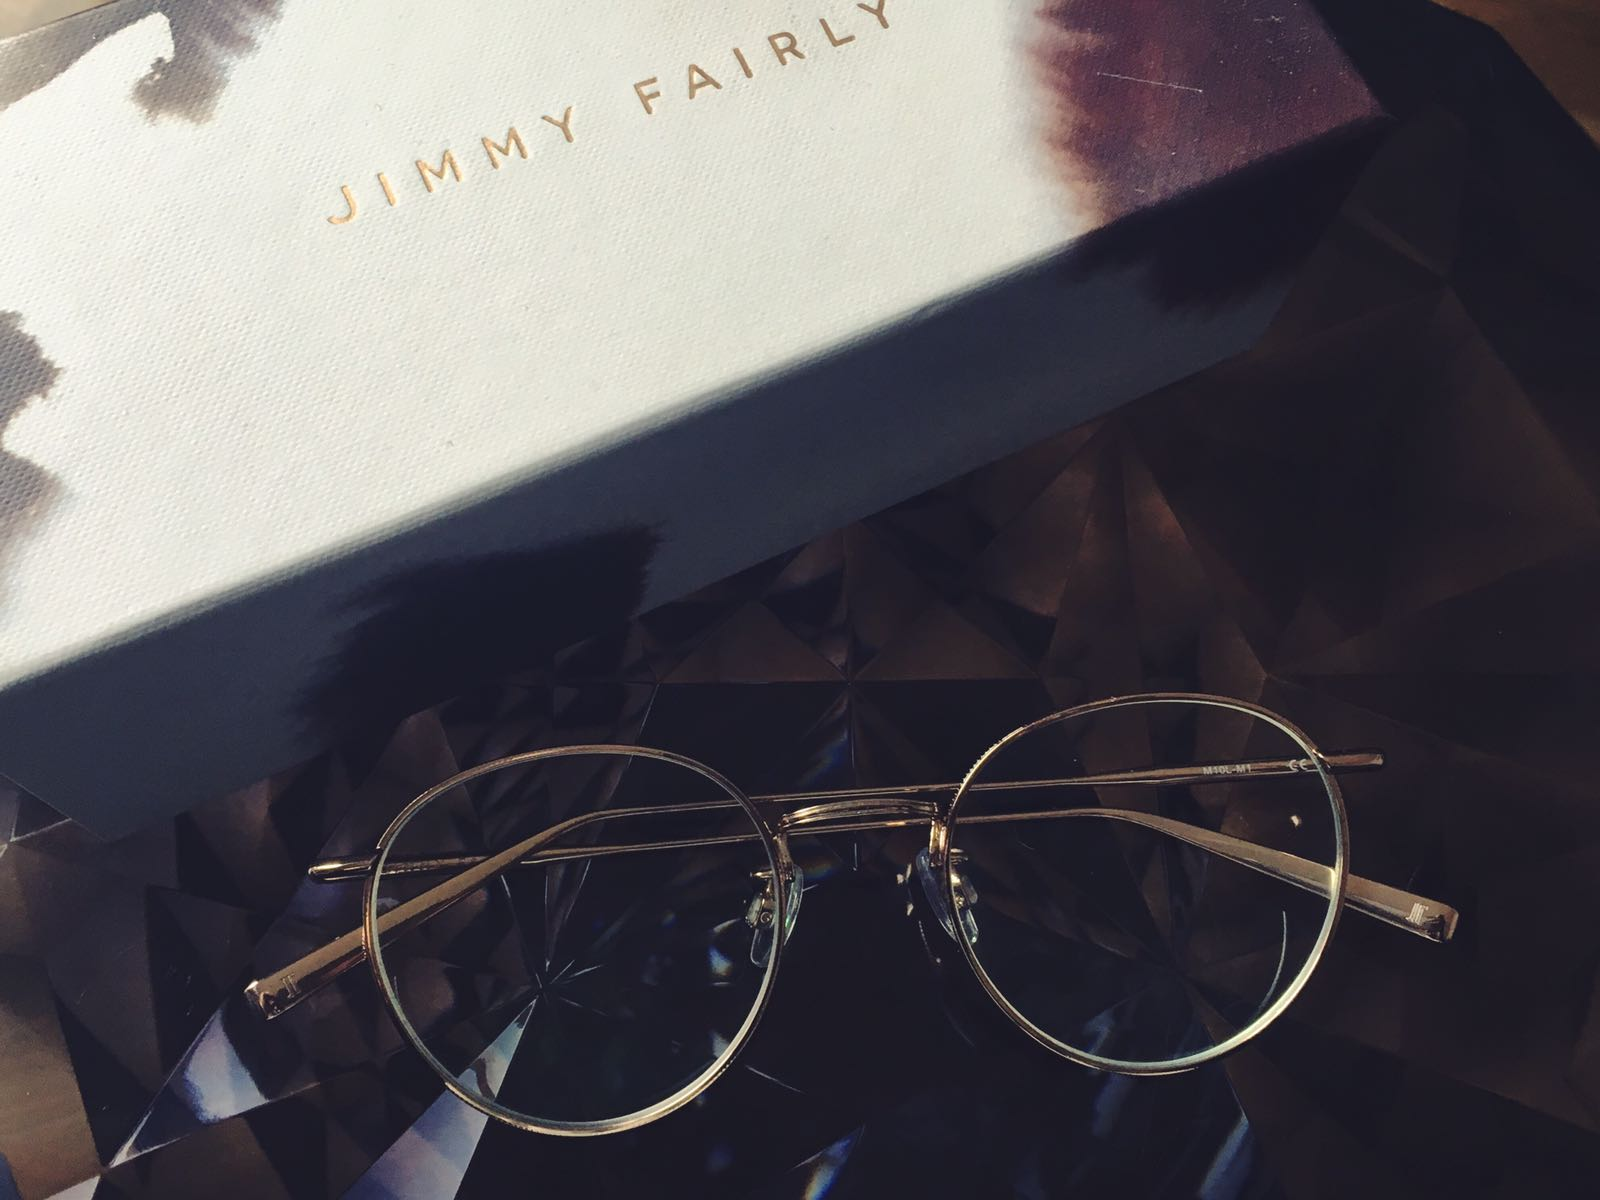 lunettes-monture-fine-metal-doree-or-agrent-jimmy-fairly-6